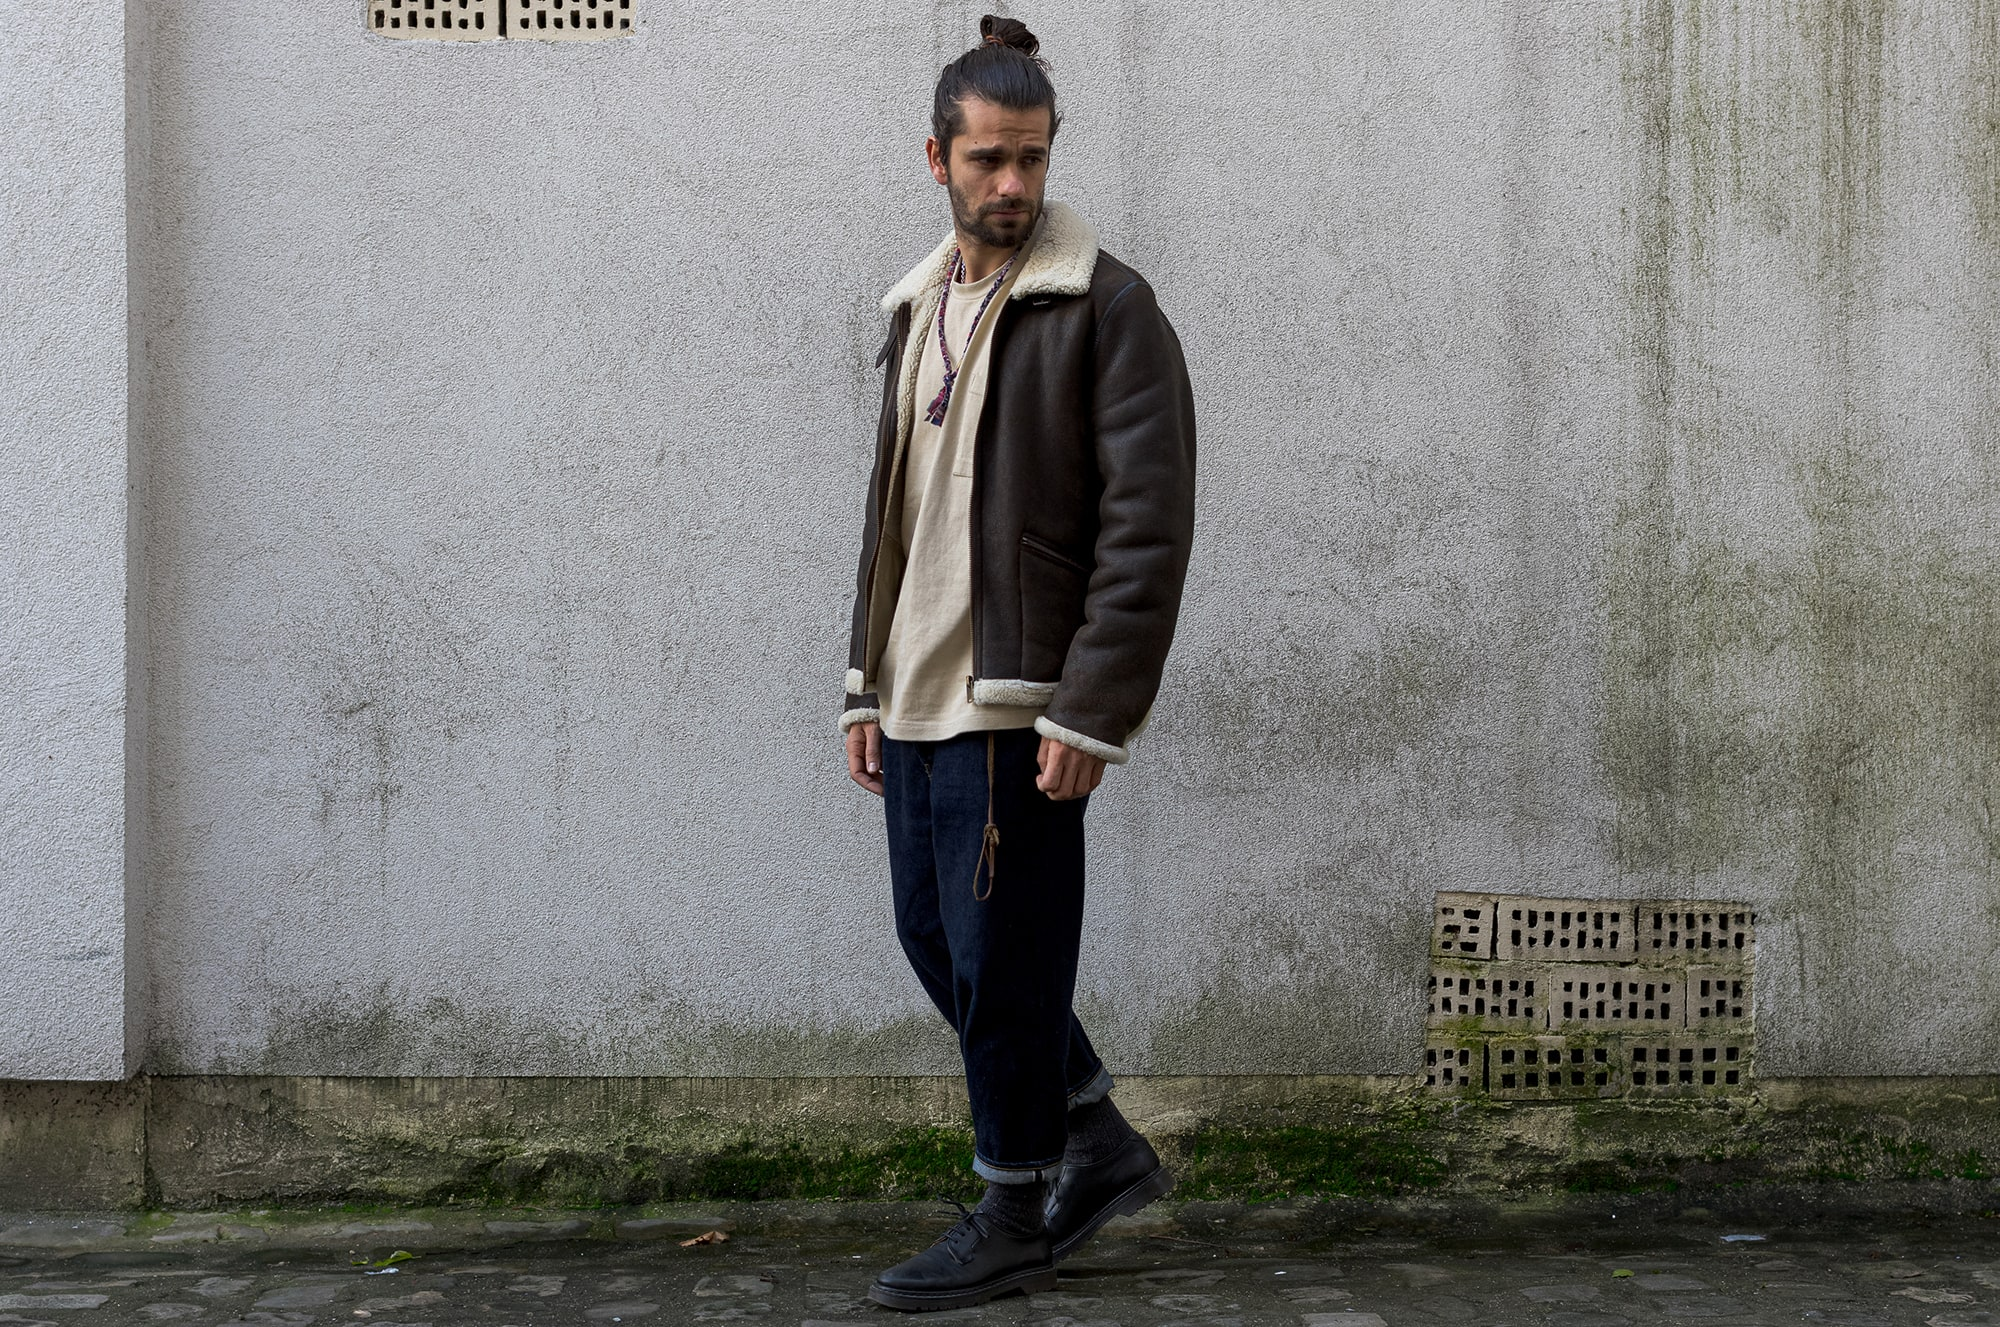 A.P.C x Louis W shearling - Realm & Empire tee - Hatski denim - A.P.C shoes - Borali necklace